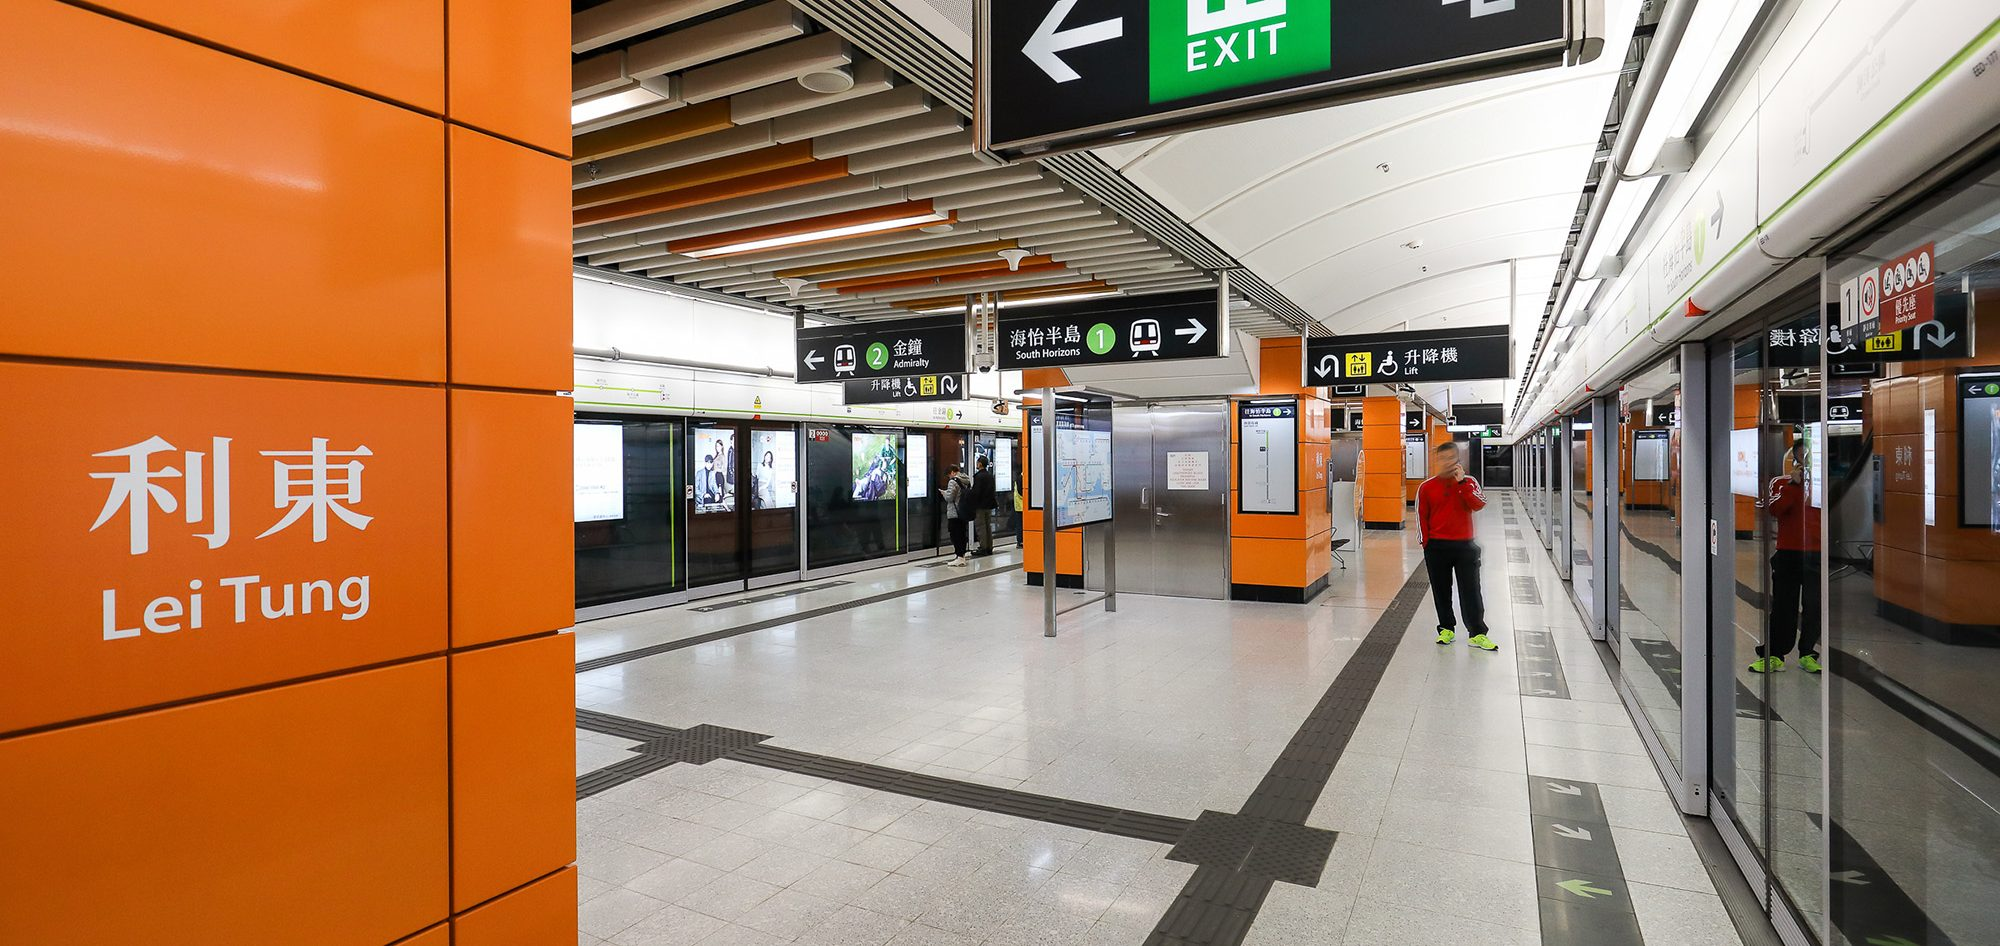 Lei Tung Station, MTR South Island Line